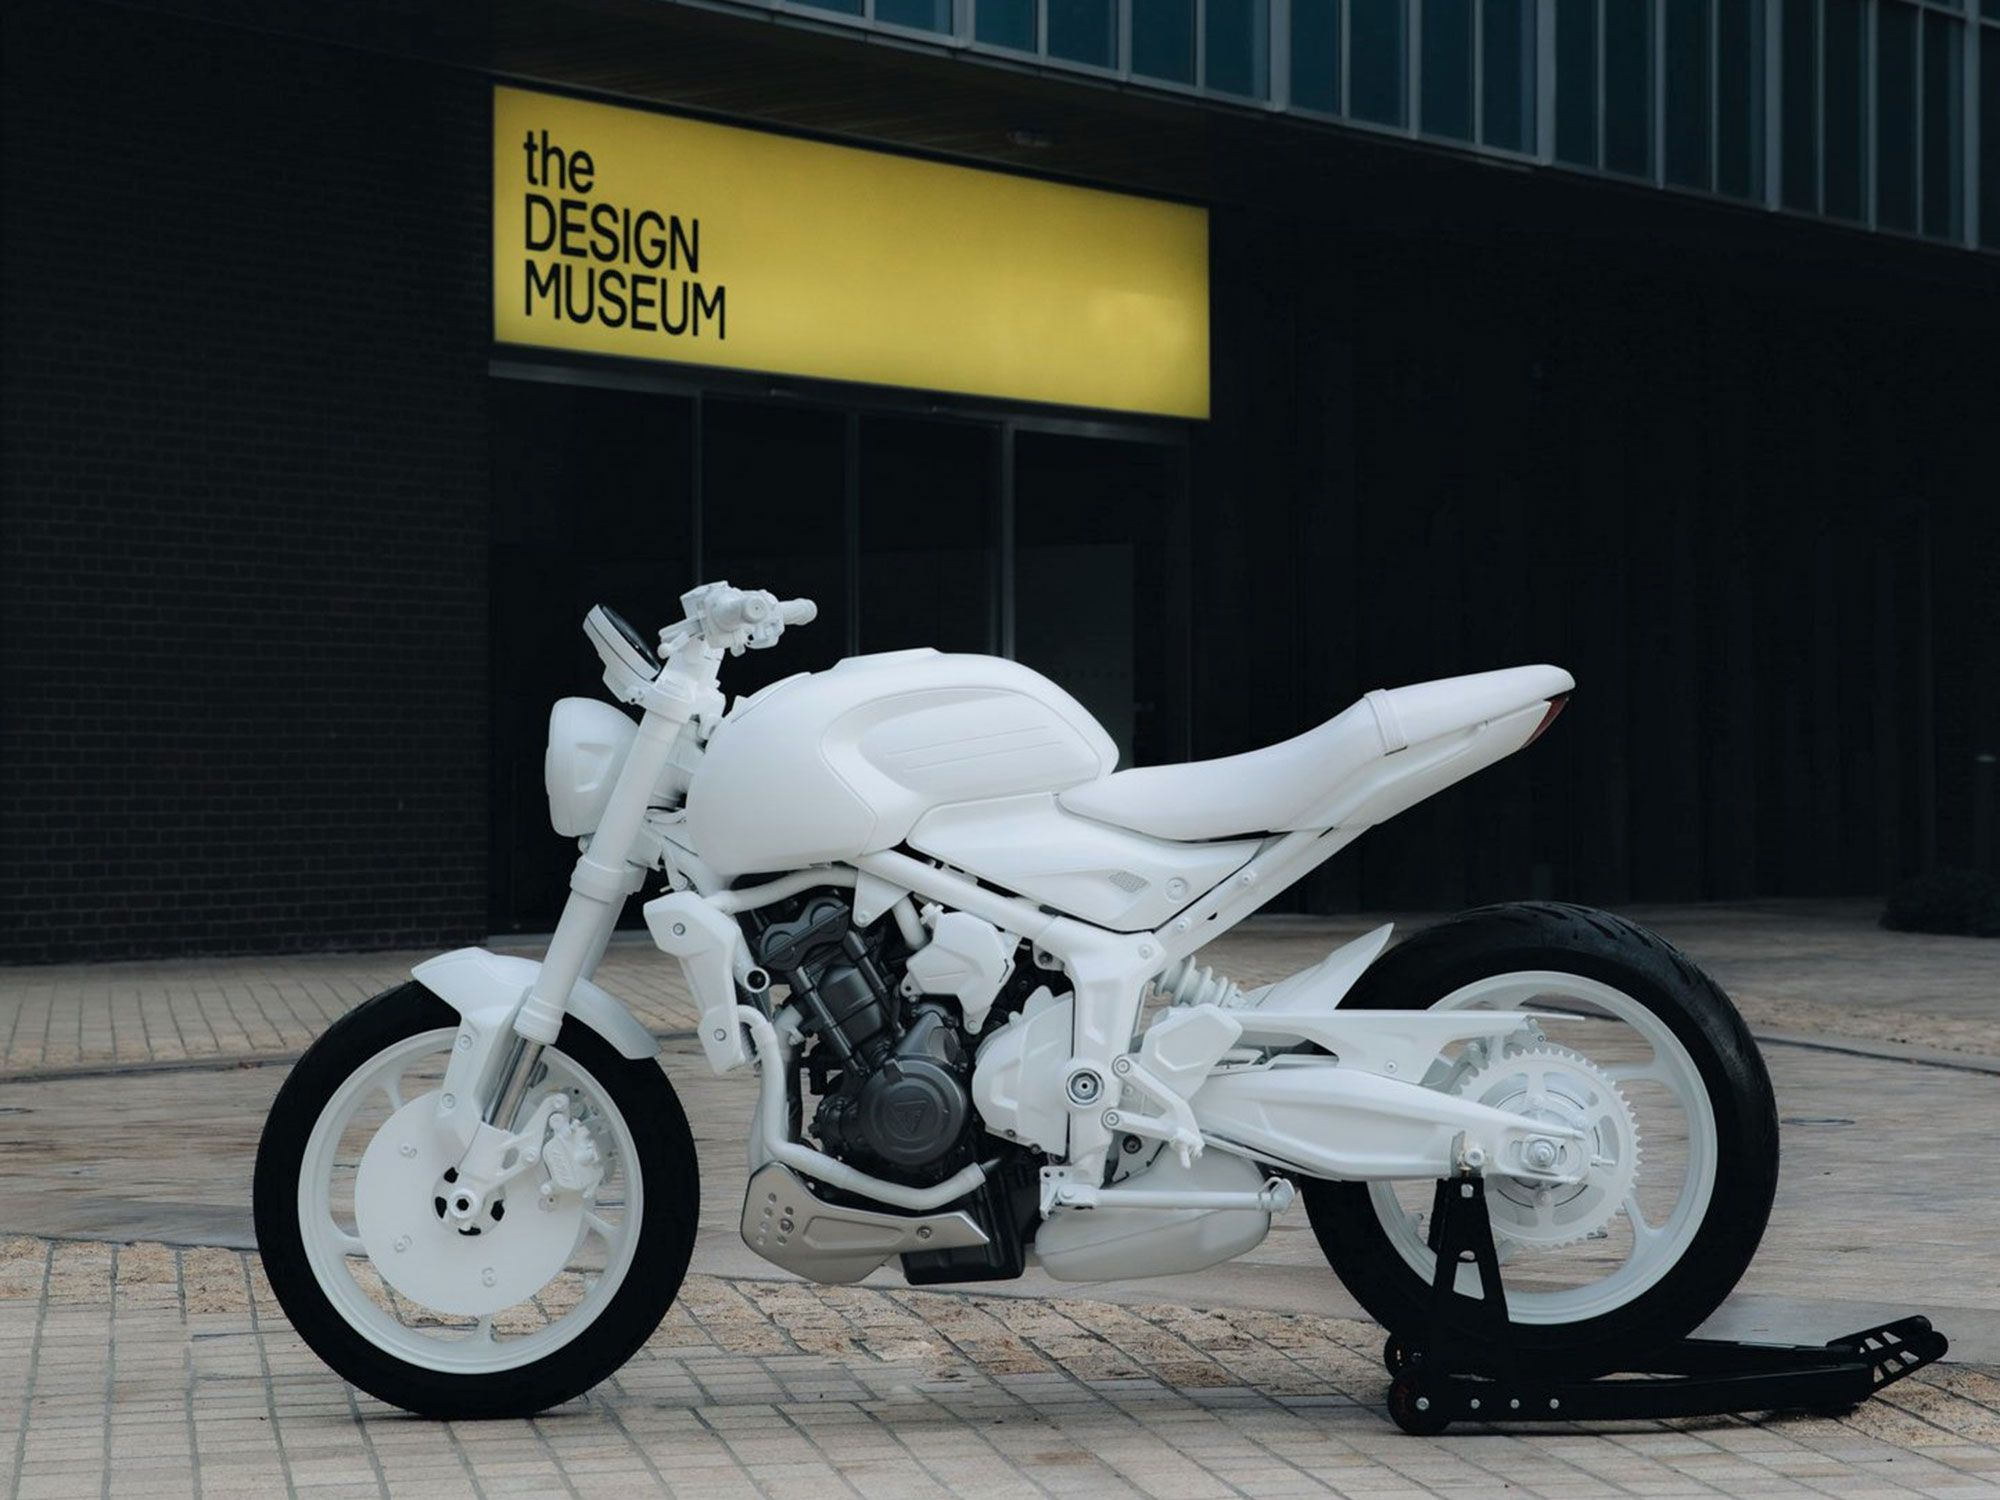 """It may look bleached out, but under that white paint, Triumph's new middleweight Trident """"prototype"""" seems production-ready."""